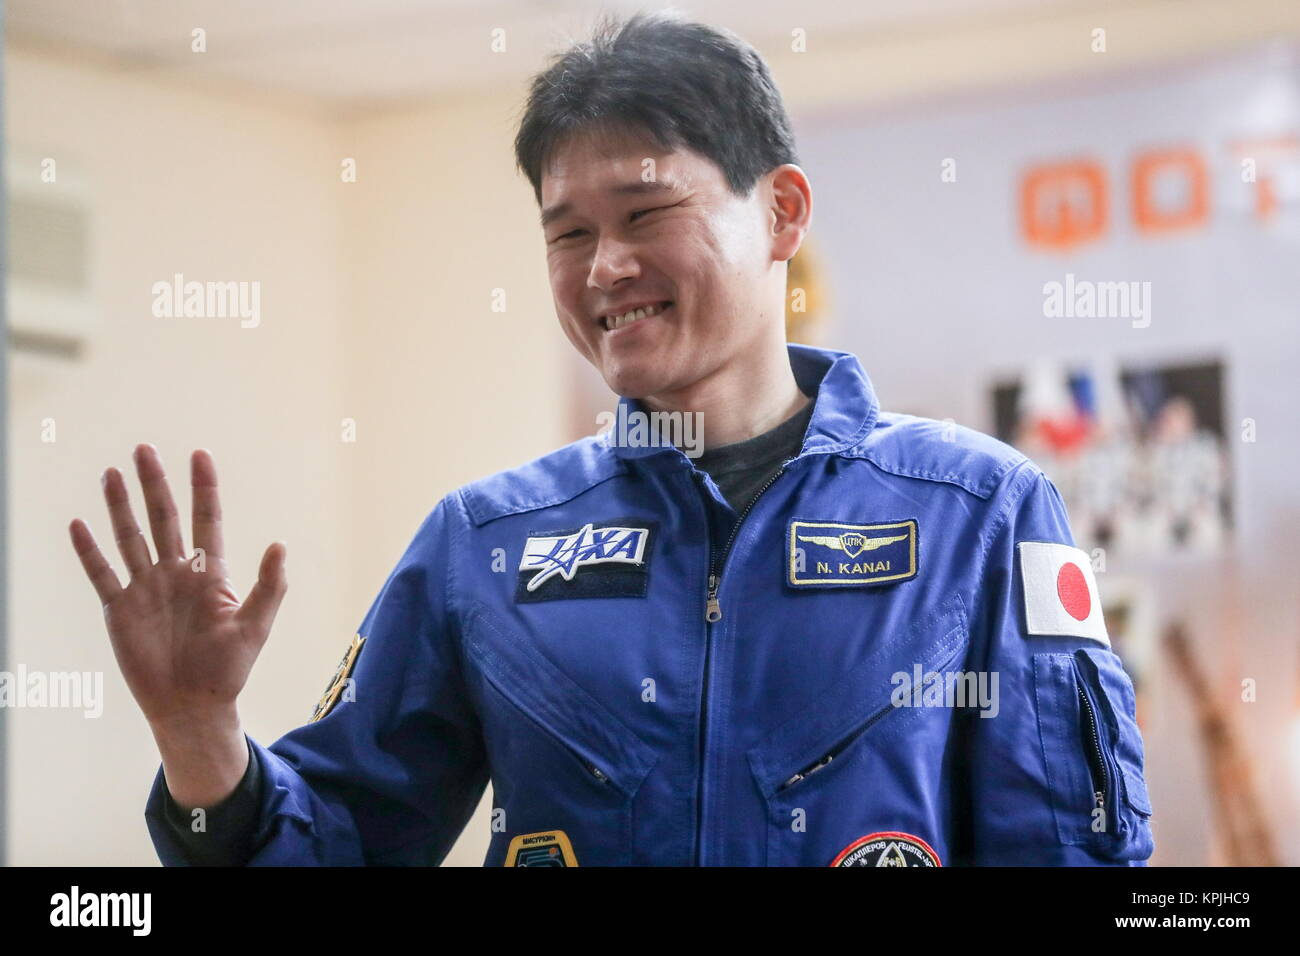 Baikonur, Kazakhstan. 16th Dec, 2017. A member of ISS Expedition 54/55 prime crew, Japanese astronaut Norishige - Stock Image